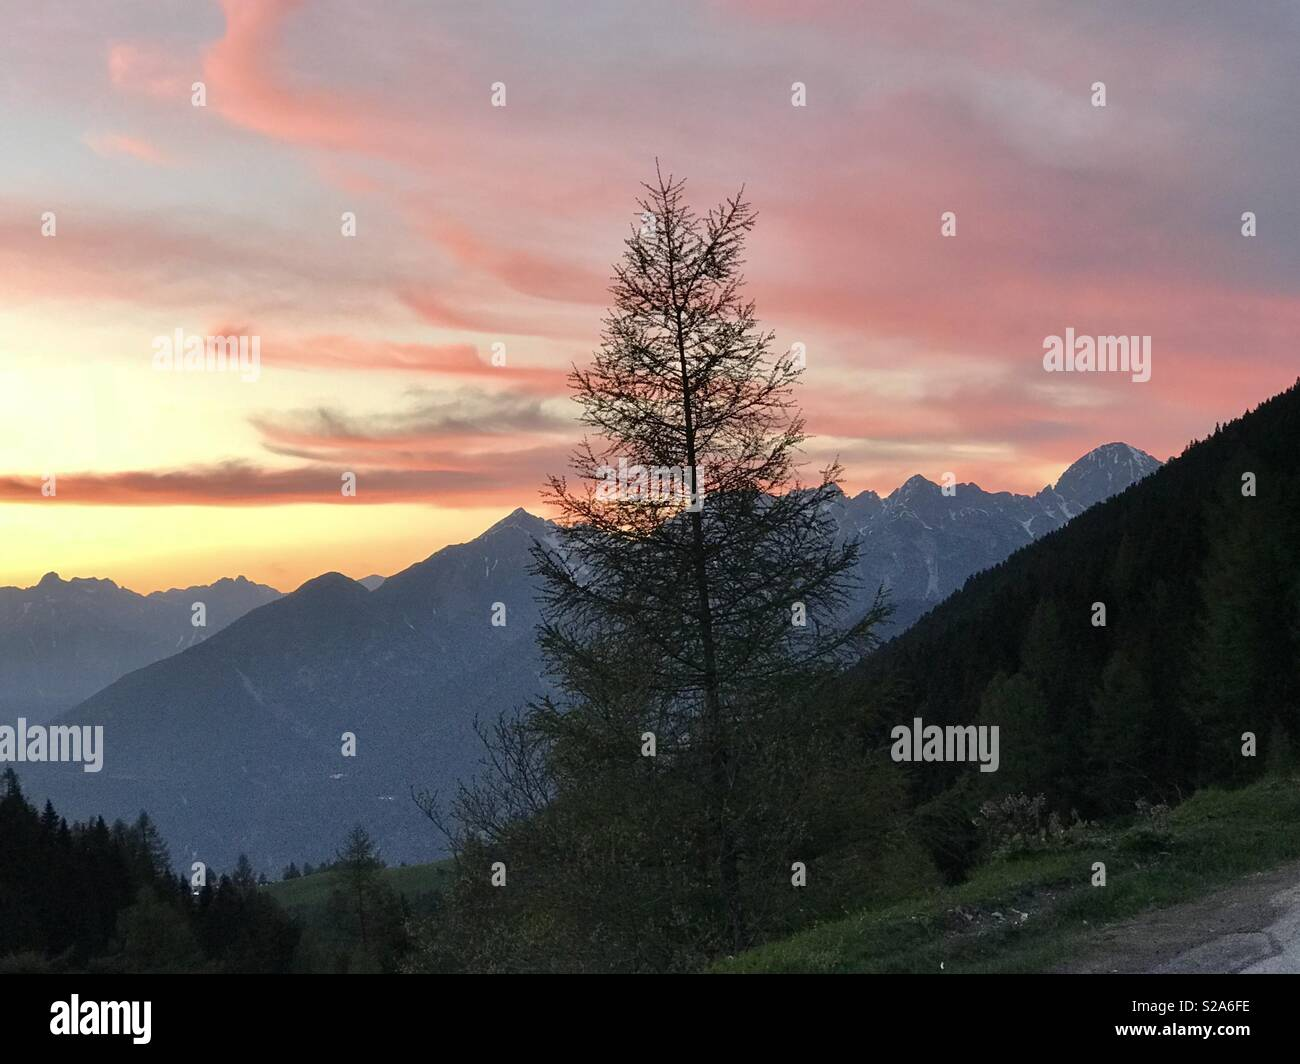 An evening in Innsbruck - Stock Image